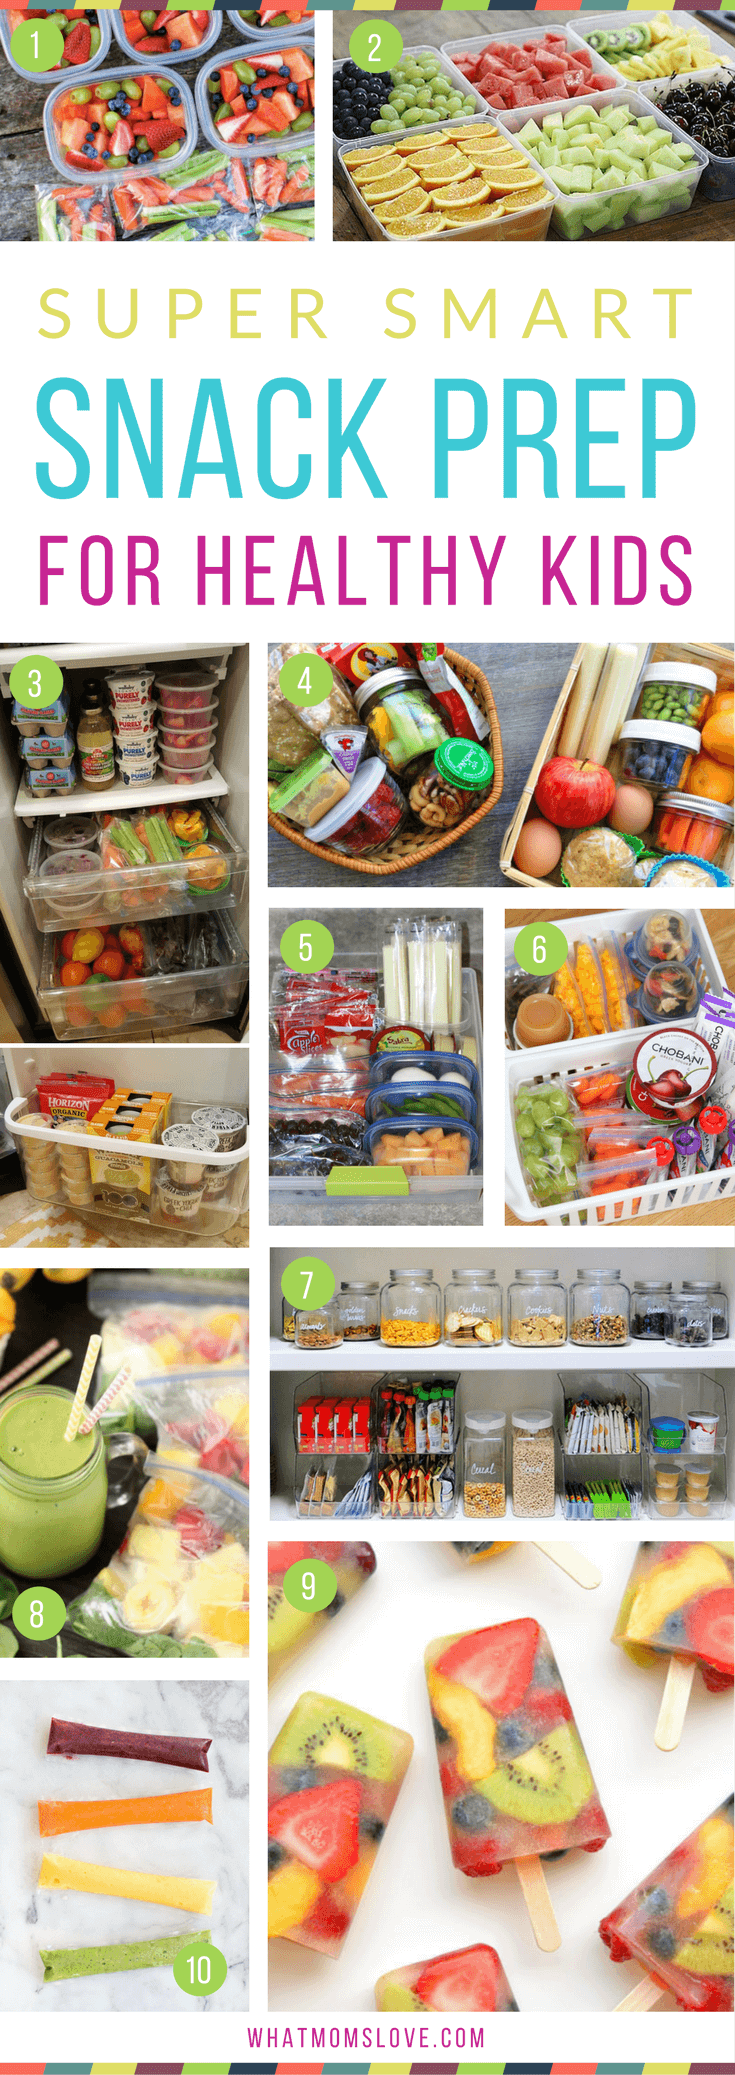 Healthy Snack Prep Ideas for Kids   Simple Organizational Tips For Clean Eating - perfect for over the summer or back to school. Snack bins, pantry and fridge organization, make-ahead snacks, and more!